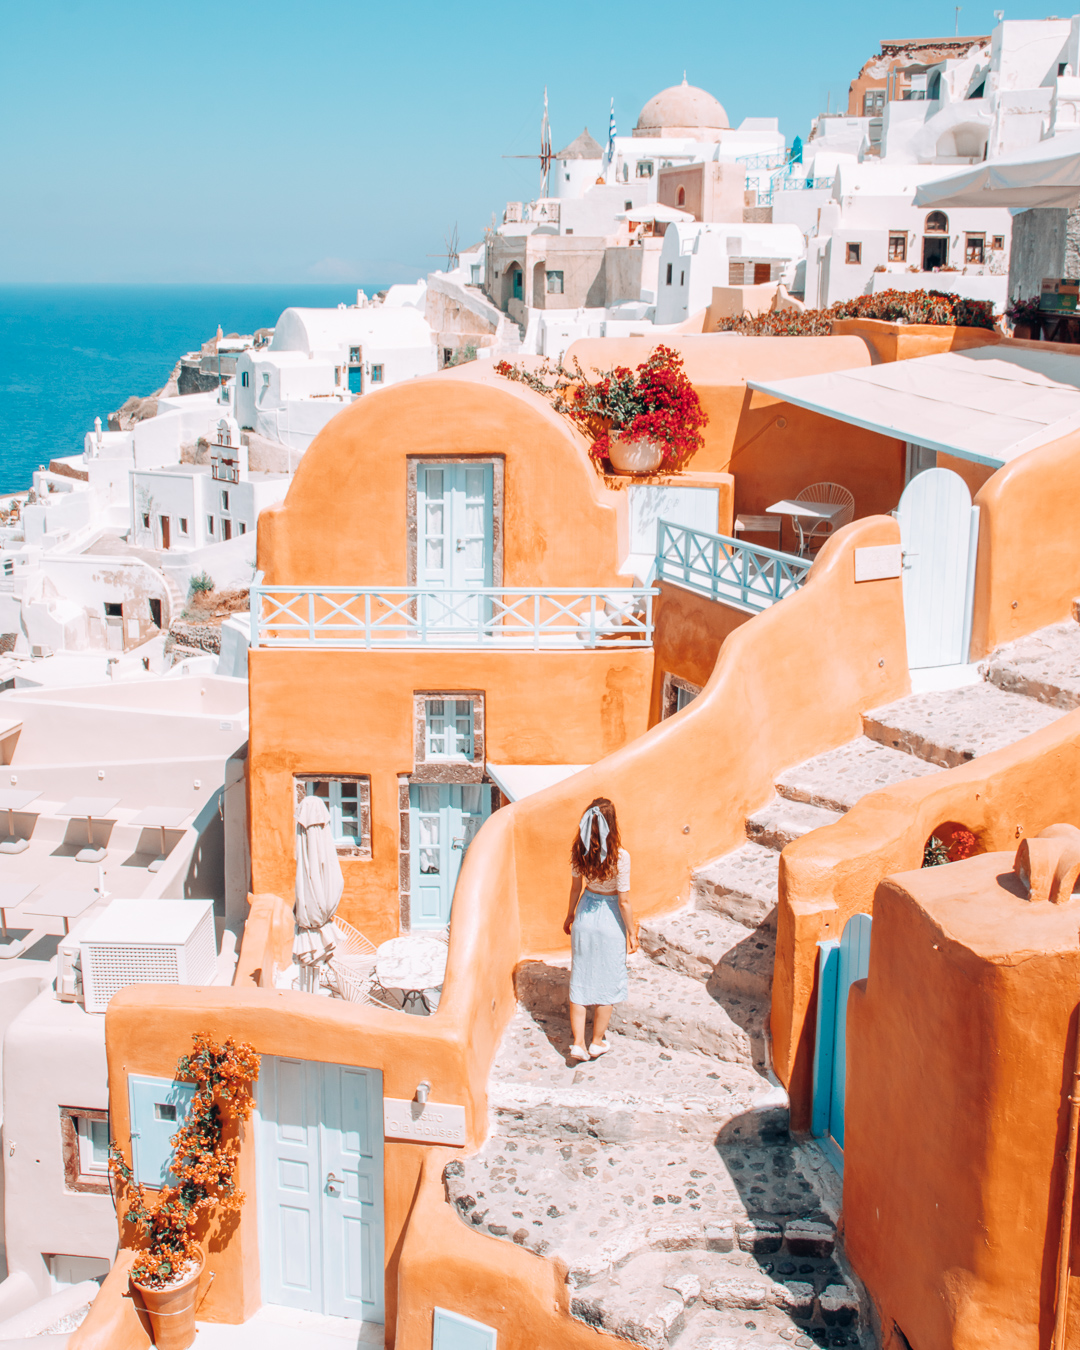 A view of Oia, Santorini